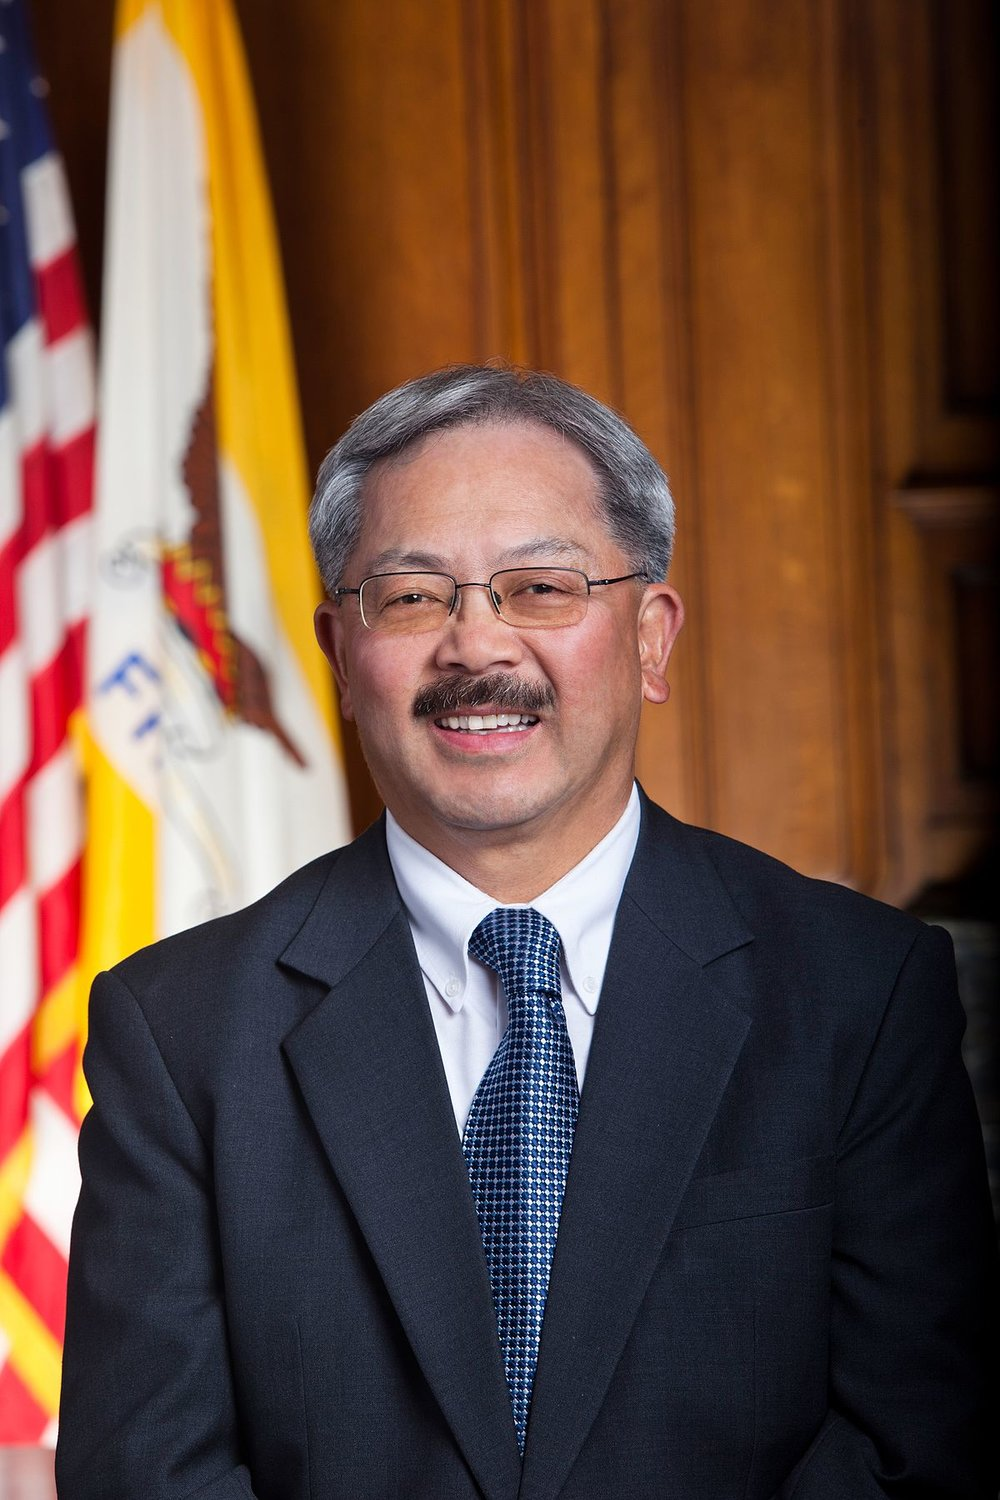 Mayor_Ed_Lee_Headshot_Closeup.jpg